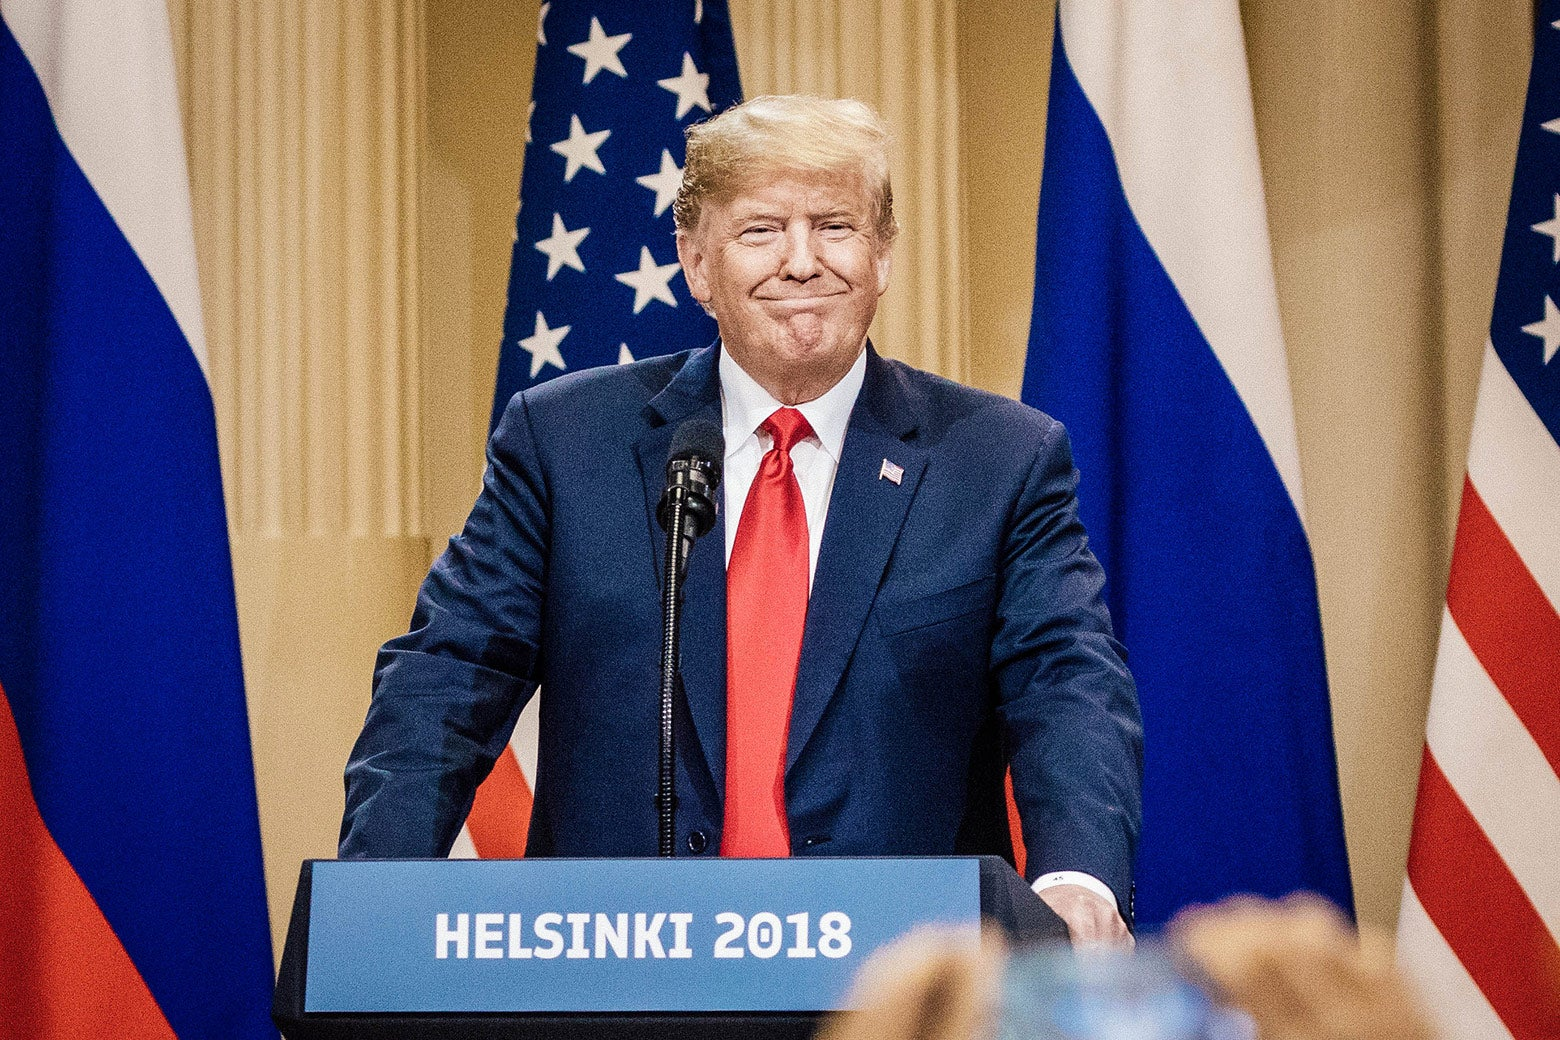 Donald Trump smirks at a press conference in Helsinki.